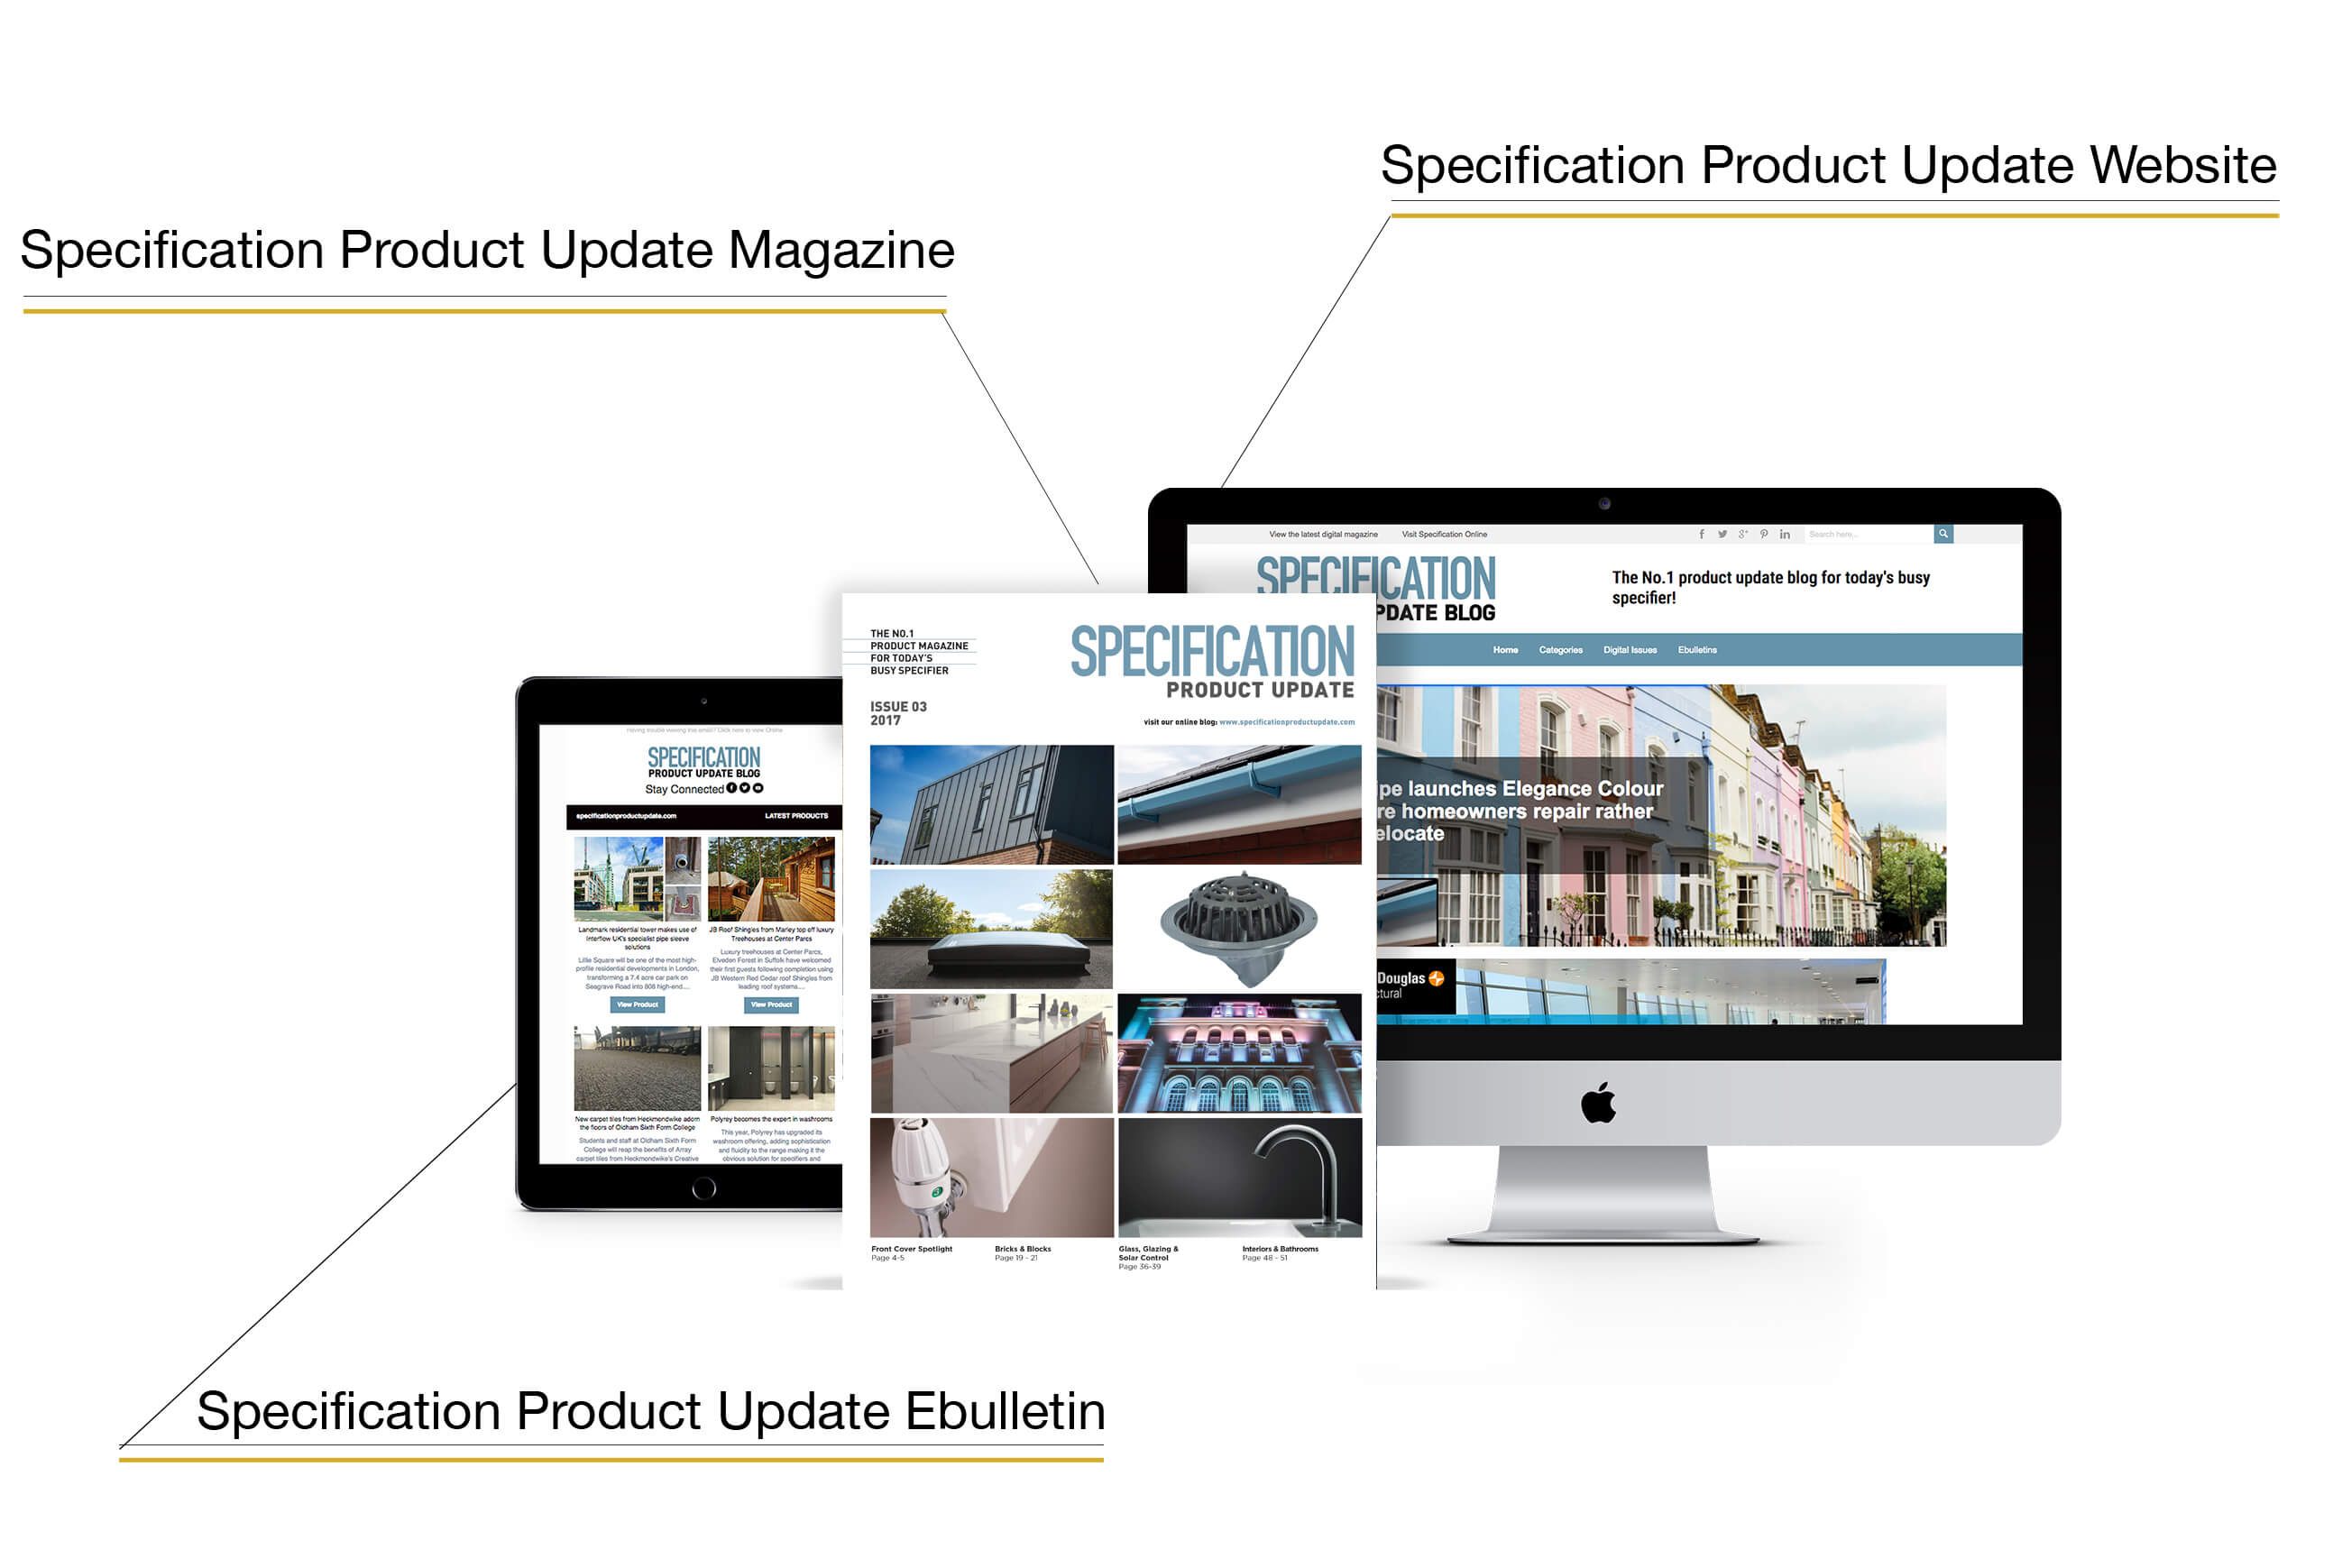 Specification Product Update